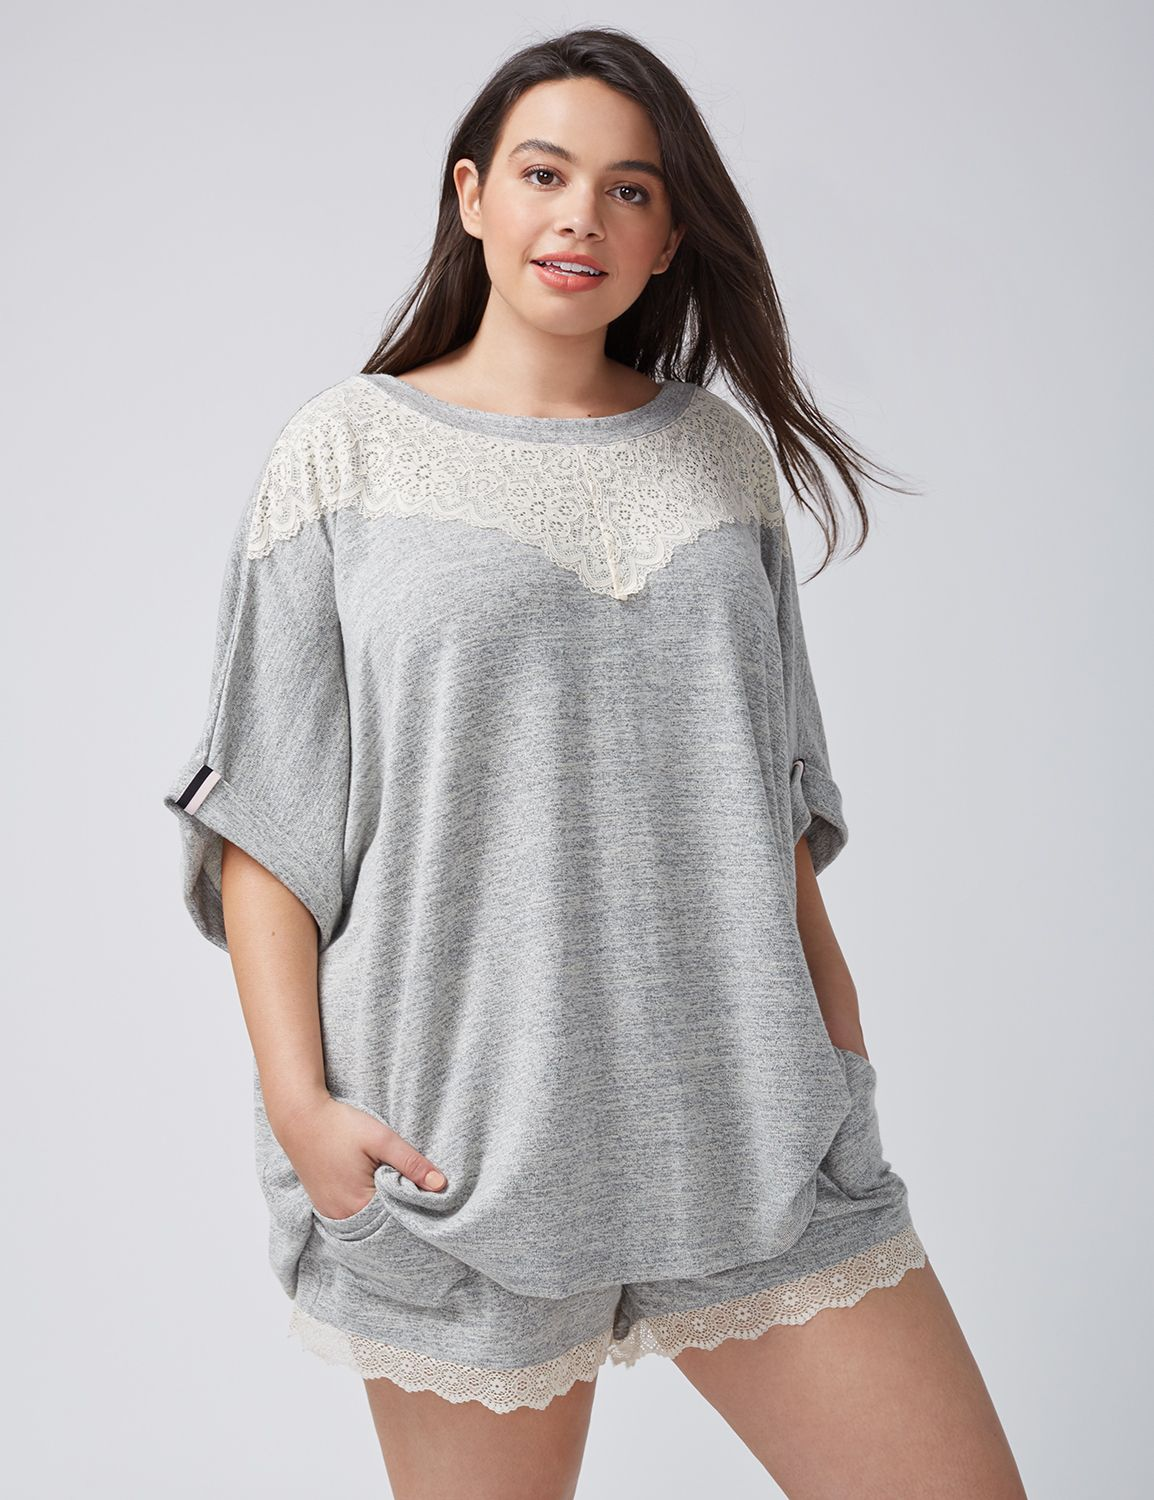 Lane Bryant Womens Lace-Trim Marled Sleep Tee 26/28 Heather Grey